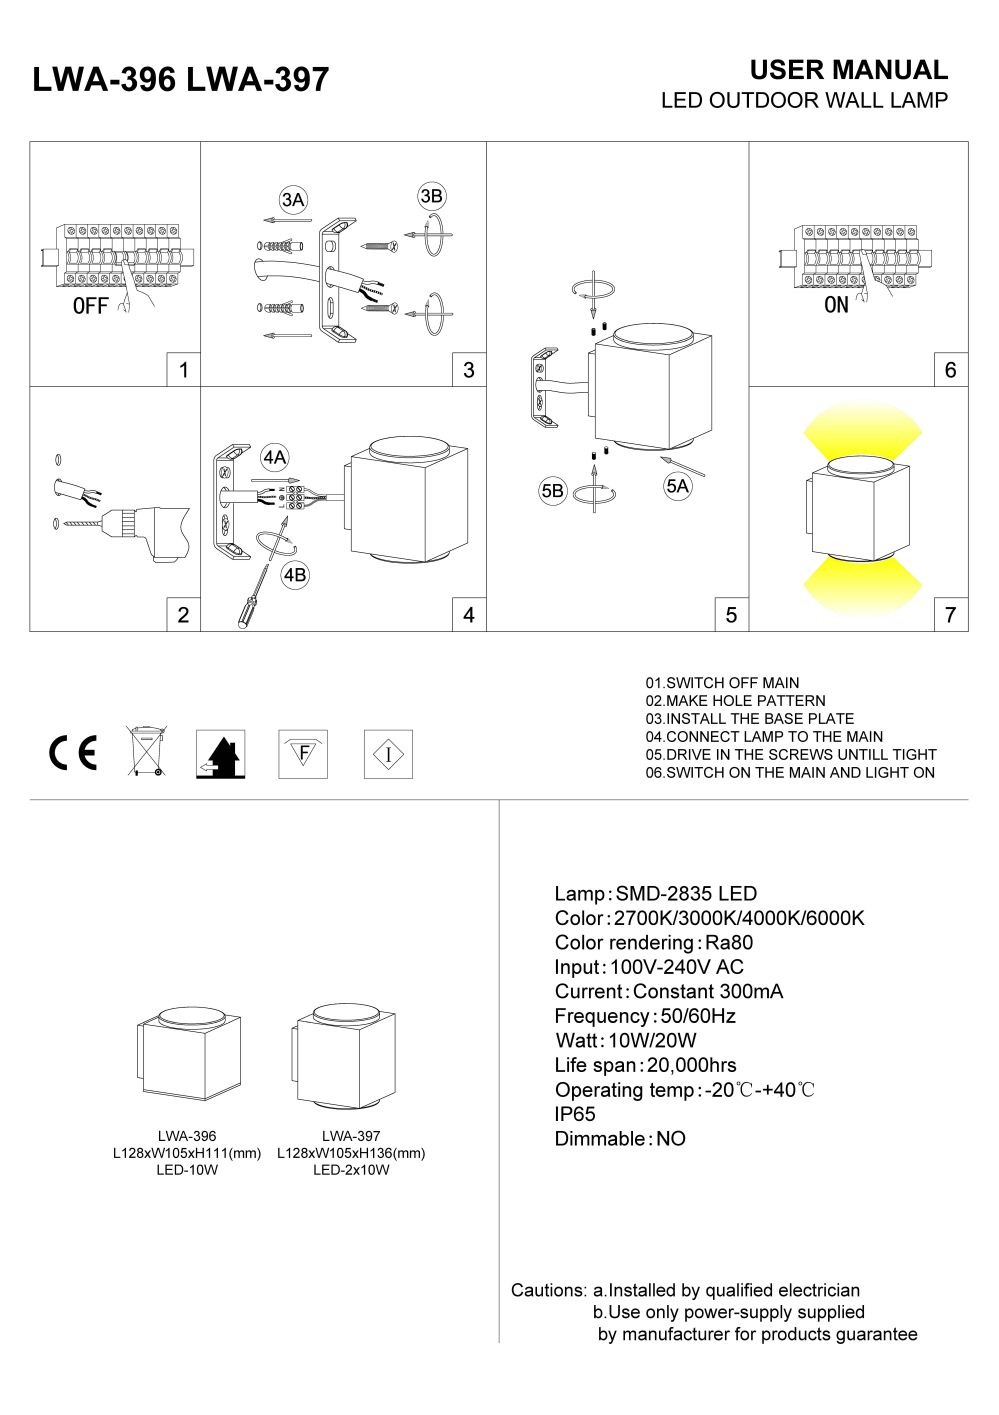 LWA-396 LWA-397 black outdoor LED wall light installation guide